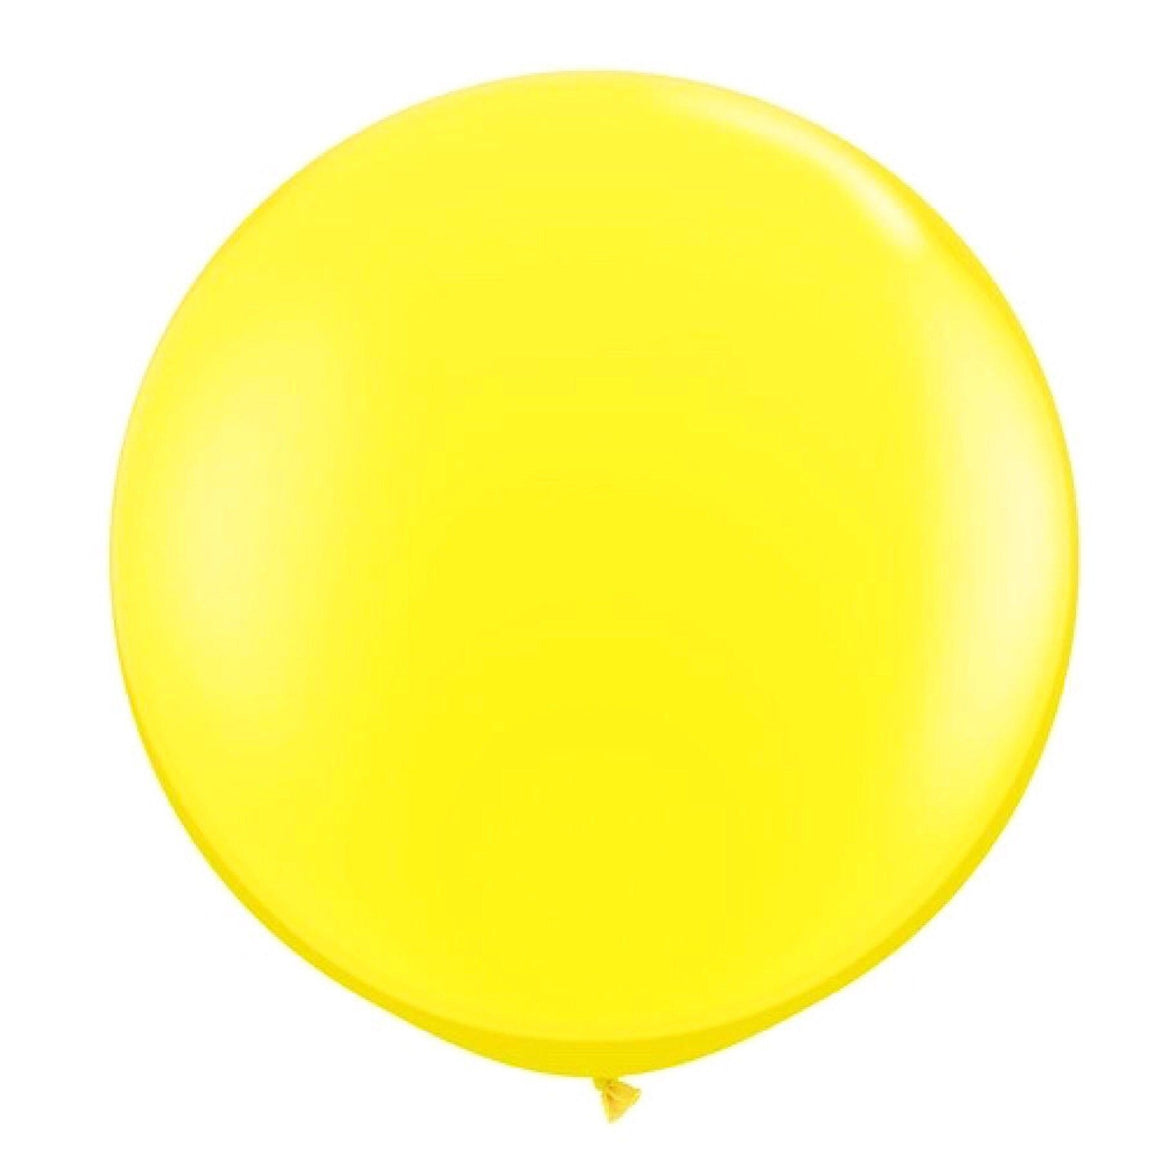 "BALLOON BAR - ROUND 36"" BRIGHT YELLOW, Balloons, QUALATEX - Bon + Co. Party Studio"